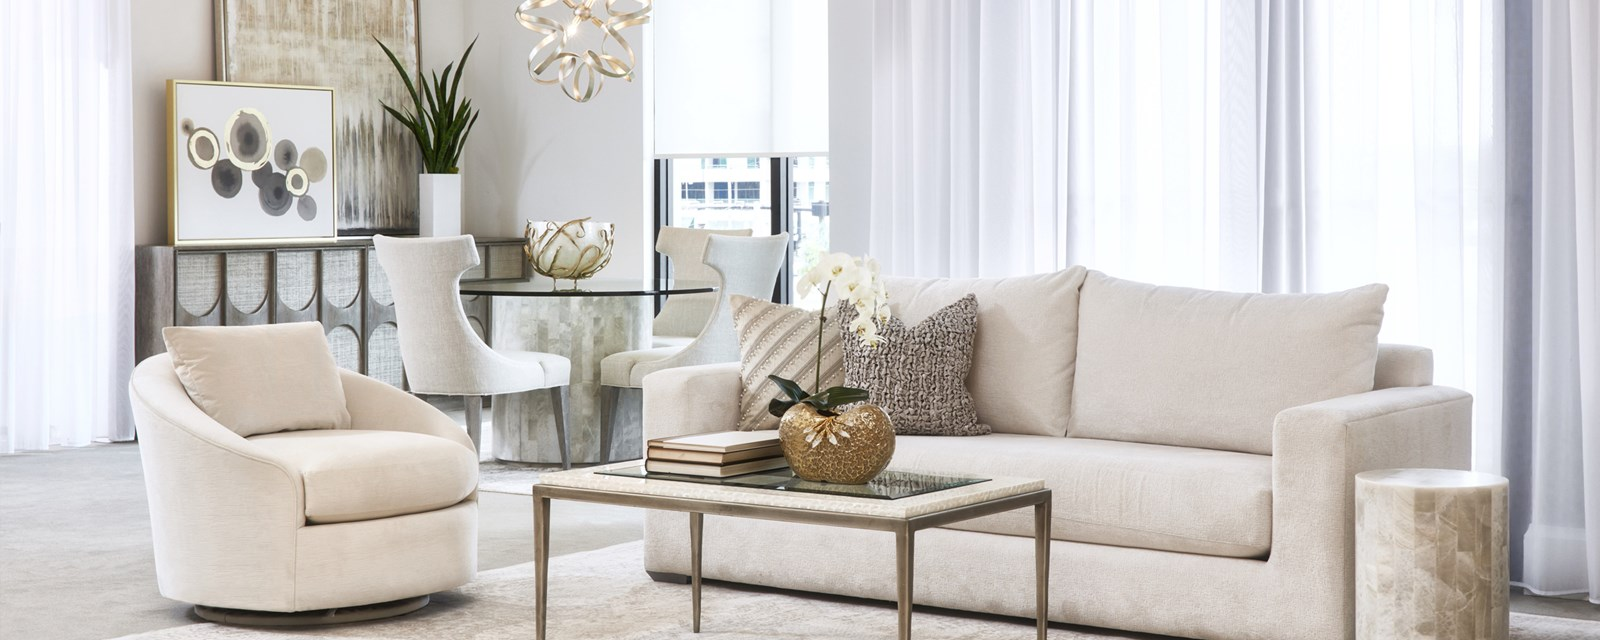 a photo of a living room setting featuring a New Traditions Garett sofa and side chair